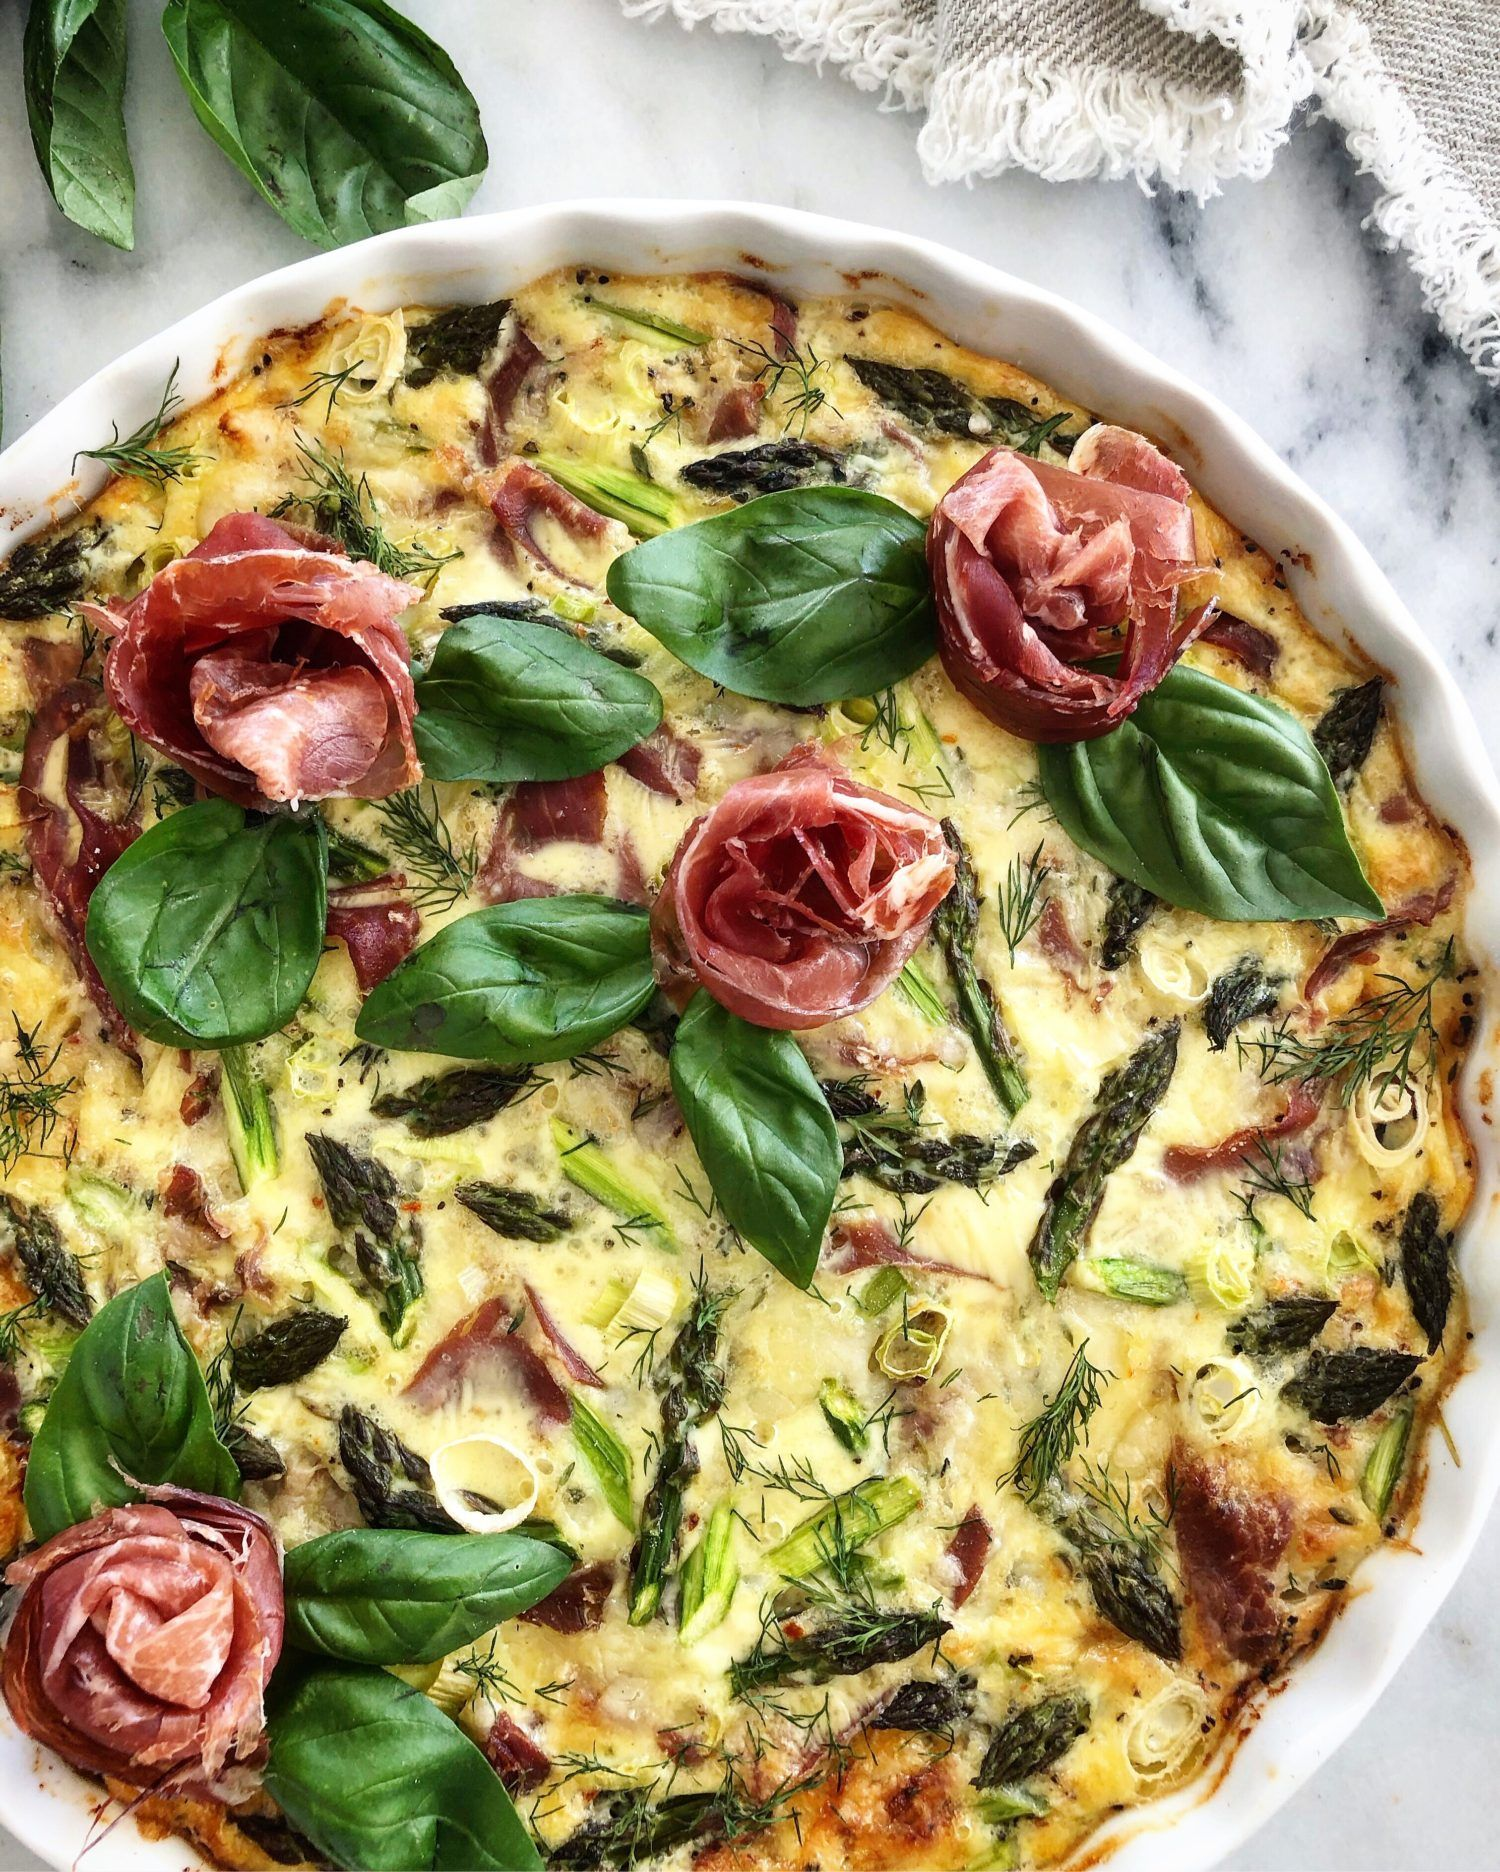 Crustless Prosciutto and Asparagus Quiche